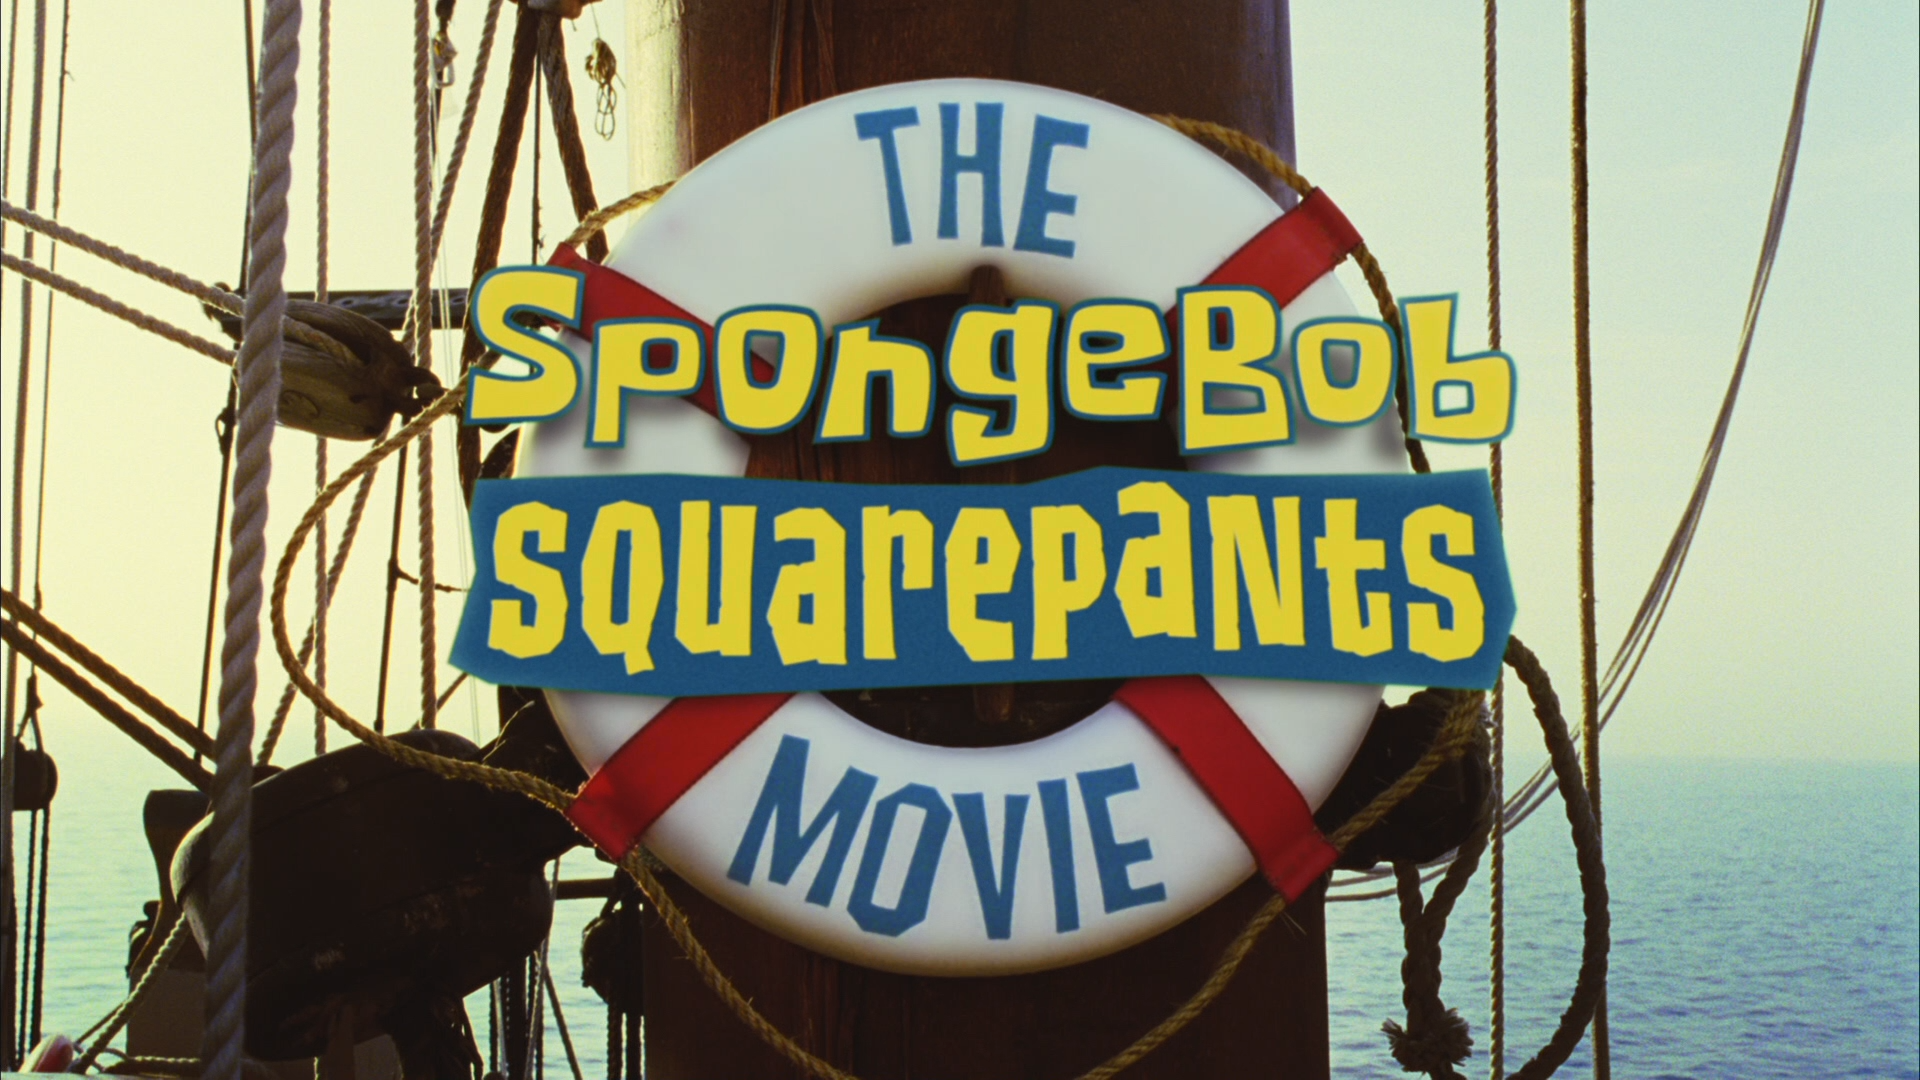 The SpongeBob SquarePants Movie | Encyclopedia SpongeBobia | FANDOM